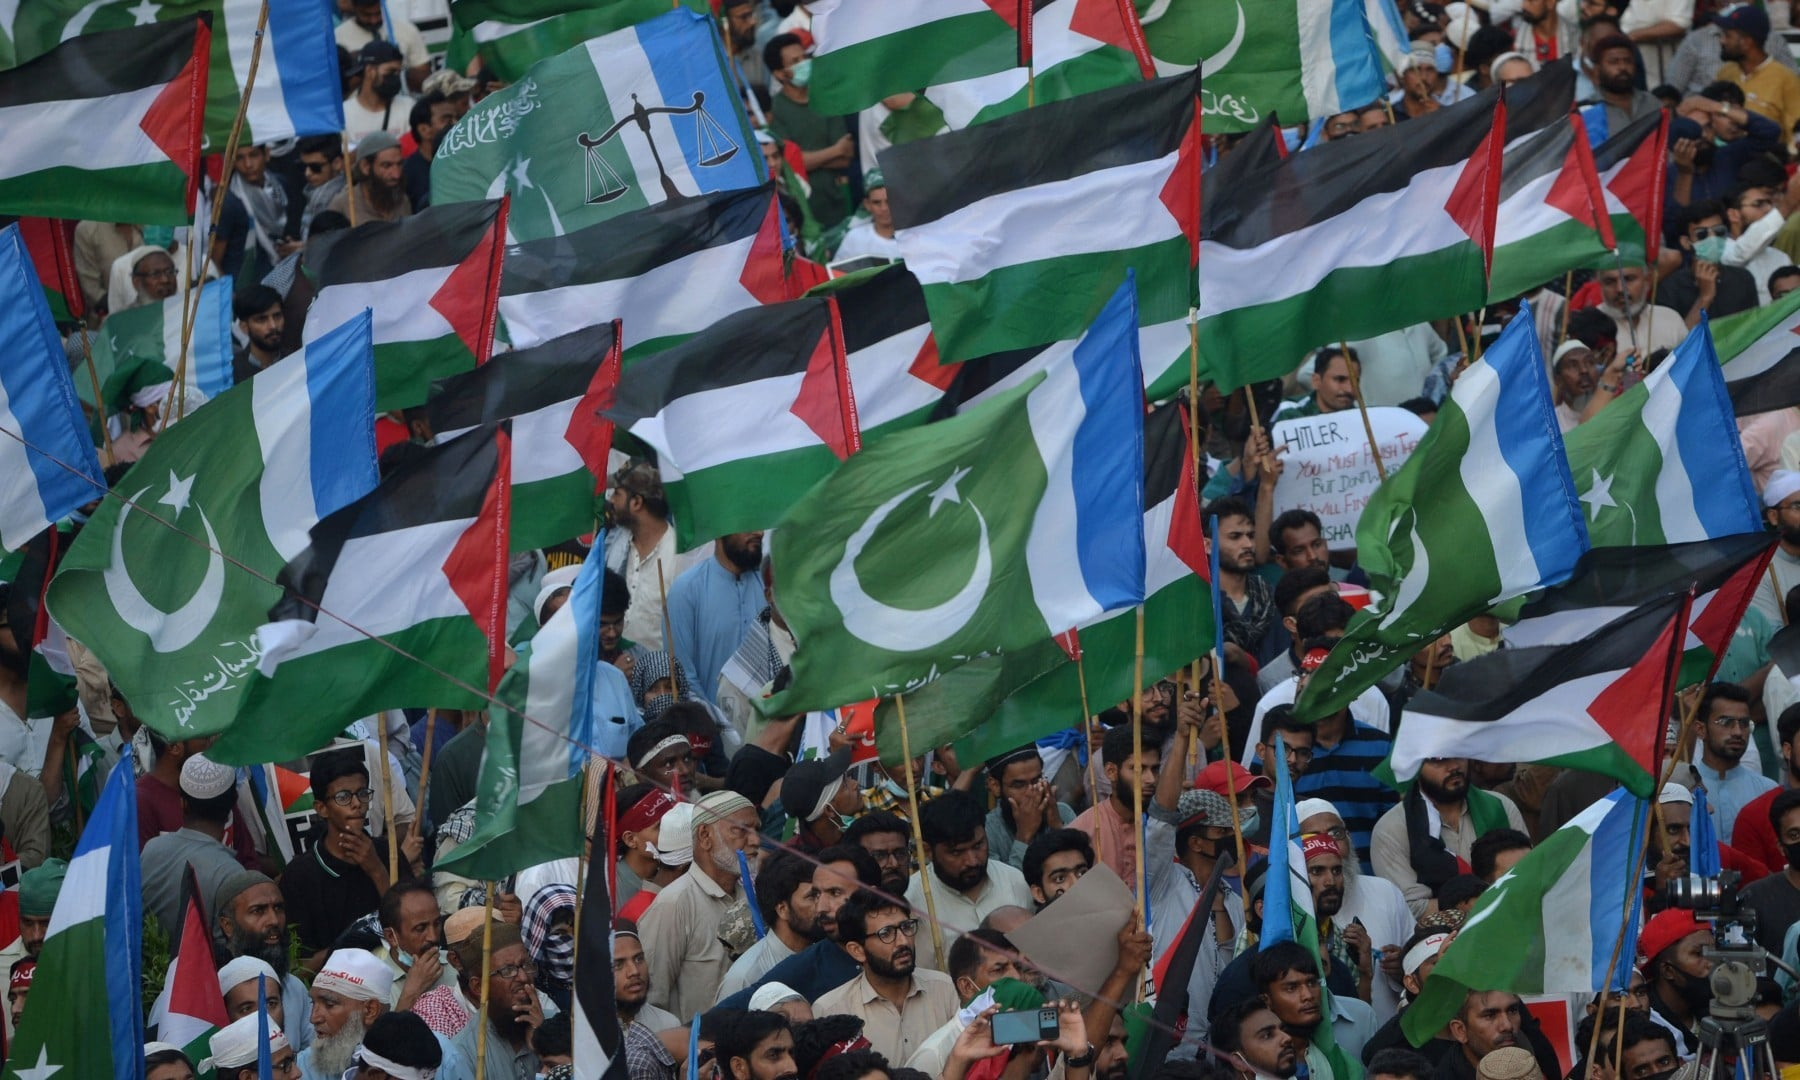 Supporters of the Jamaat-e-Islami (JI) wave Palestinian and their party flags during a protest against Israel's attacks on the Palestinian Gaza Strip in Karachi on May 23. — AFP